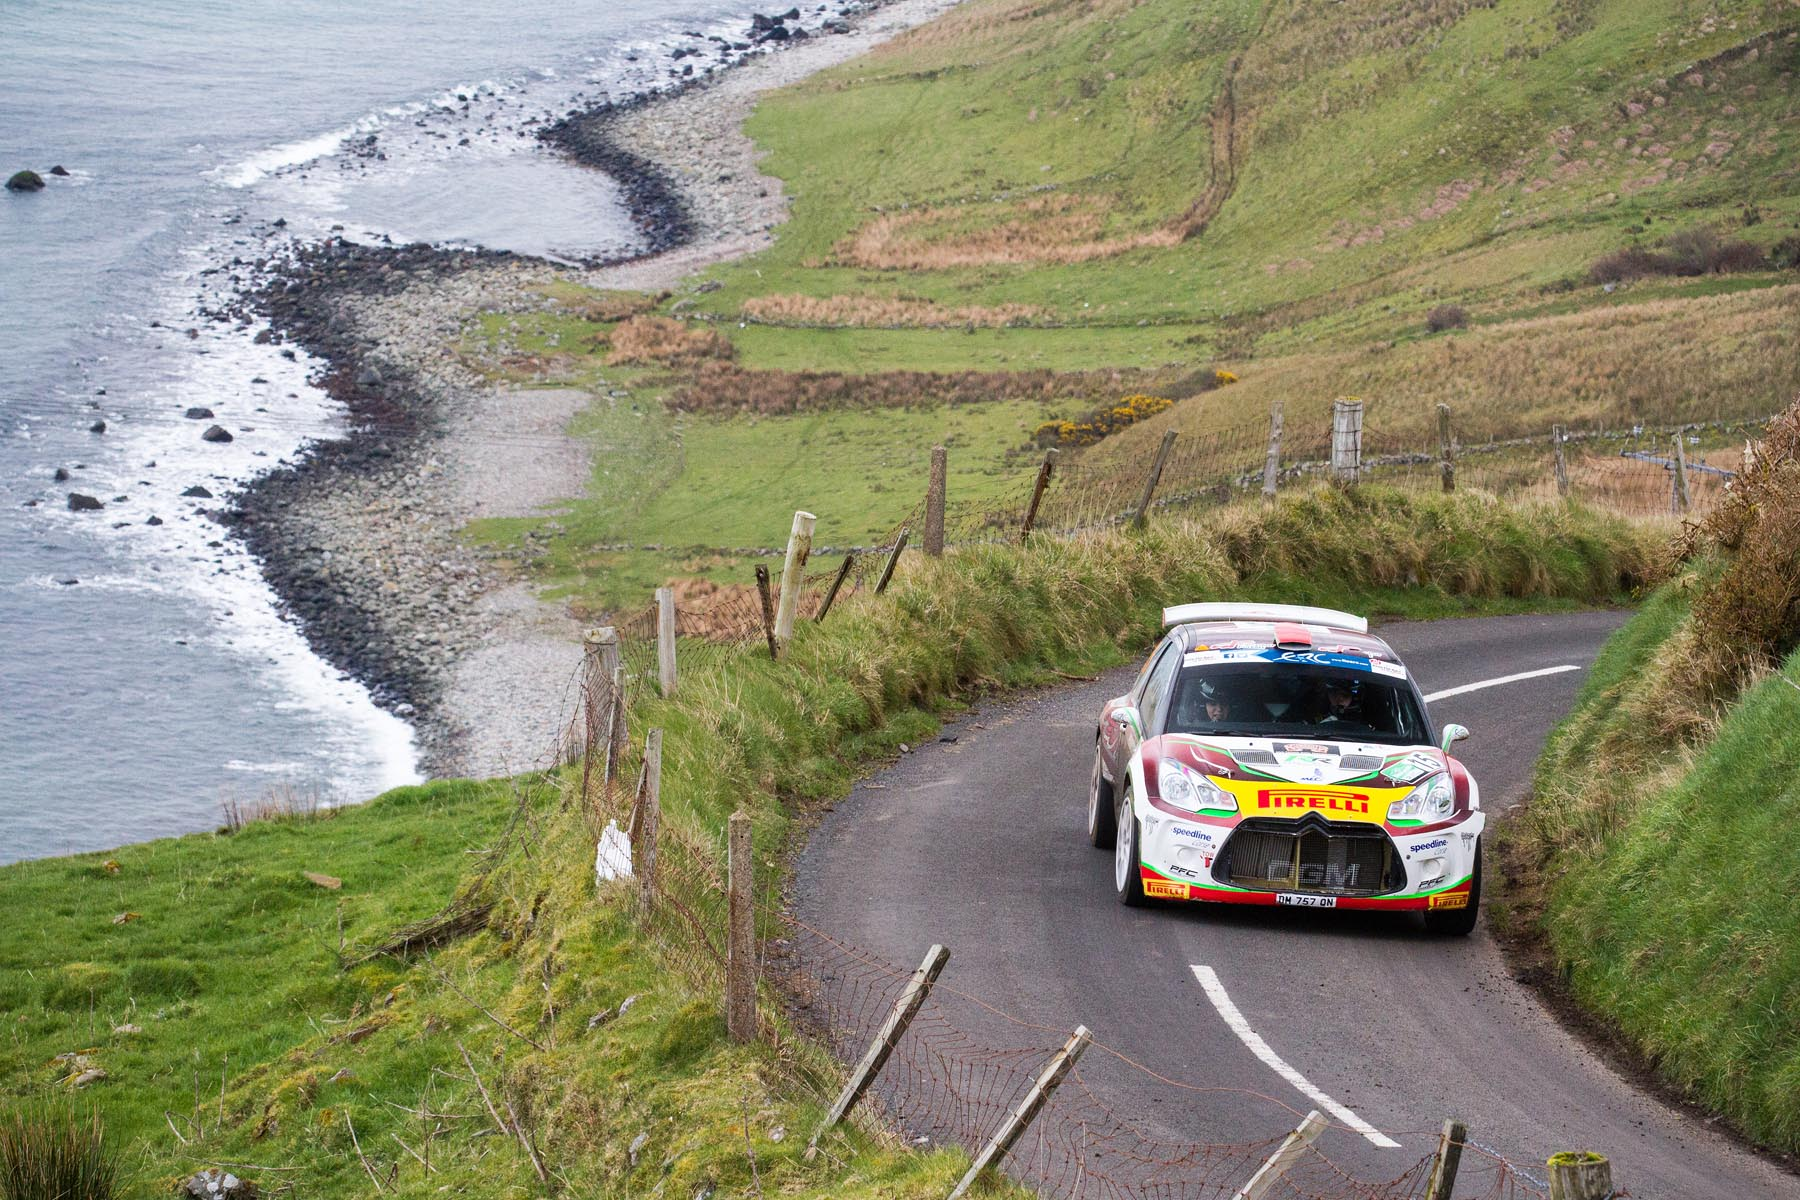 British Rally Championship set for titanic Ulster Tarmac tussle ...